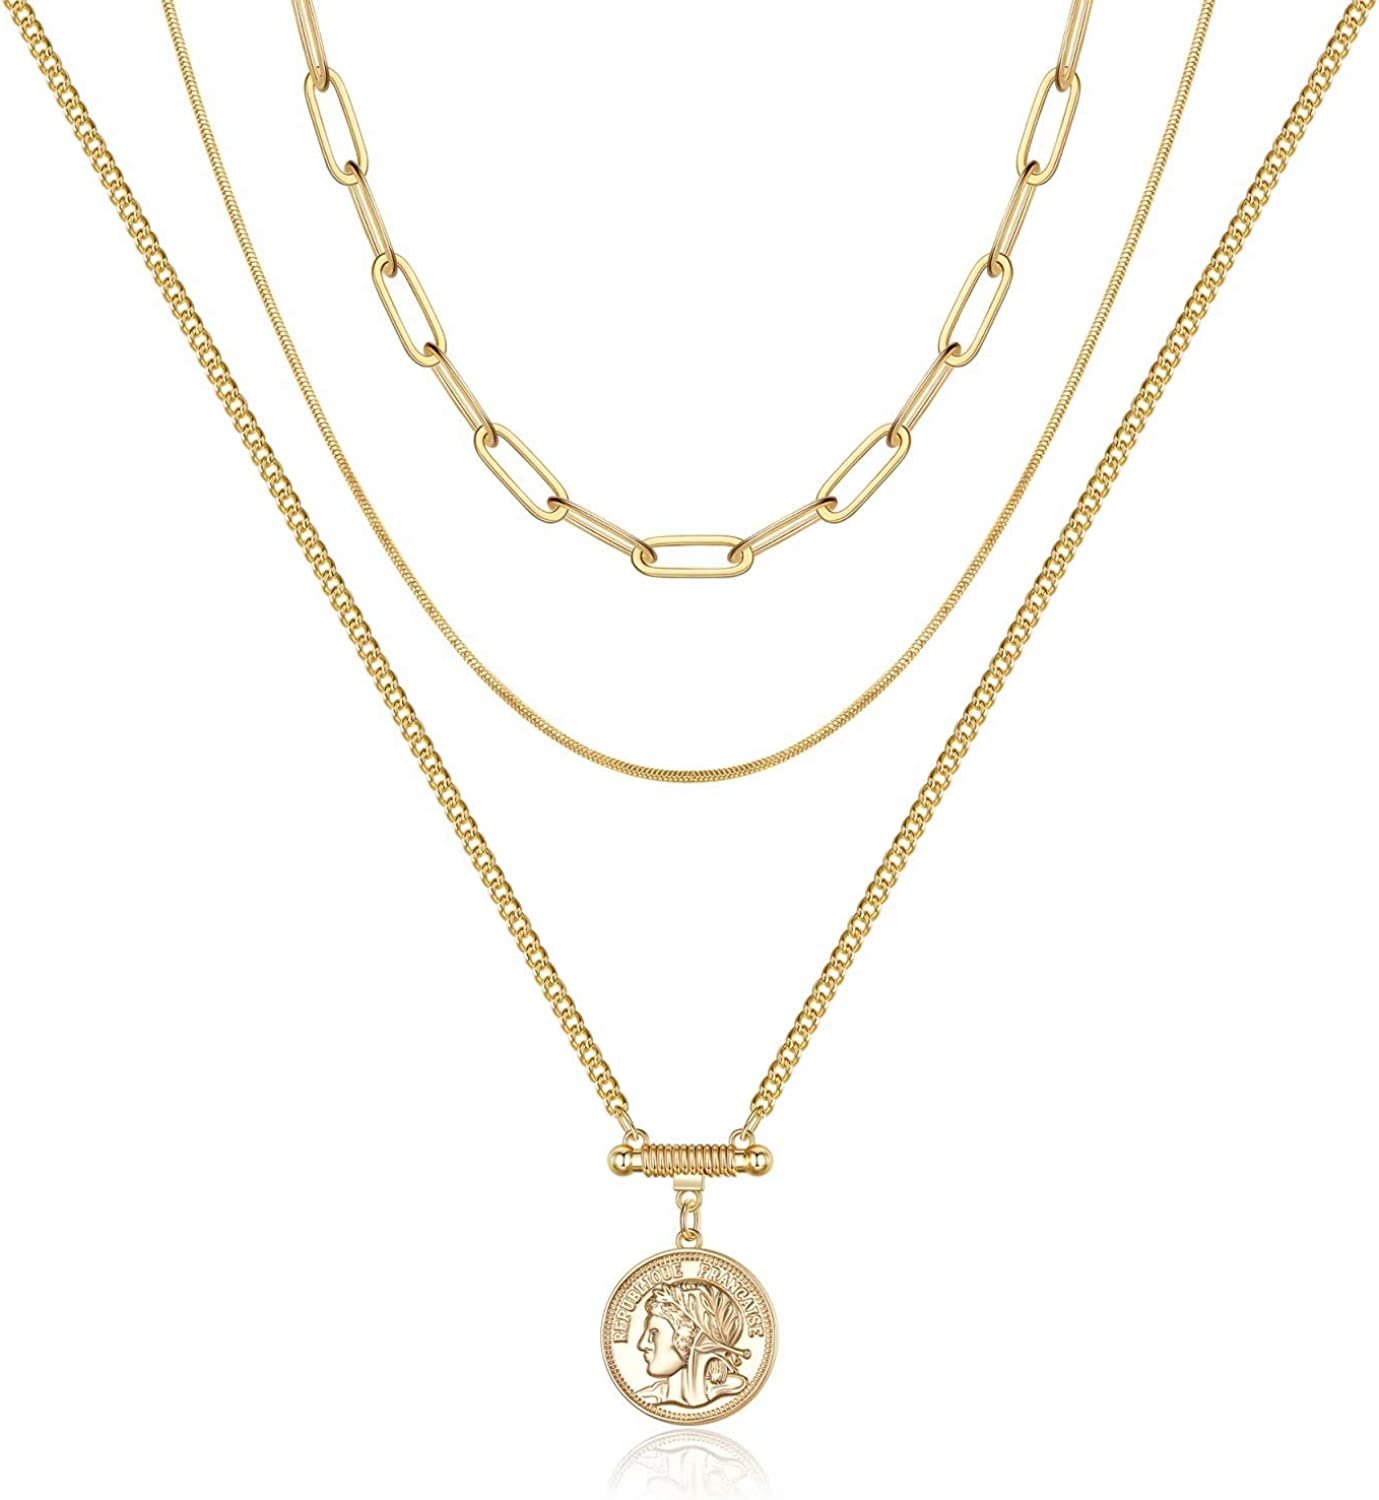 Layered Gold Coin Necklaces for Women, 14K Gold Plated Coin Pendant Vintage Medallion Necklace Heart Crescent Rope Chain Herringbone Snake Cuban Paperclip Chain Coin Necklaces for Women Jewelry